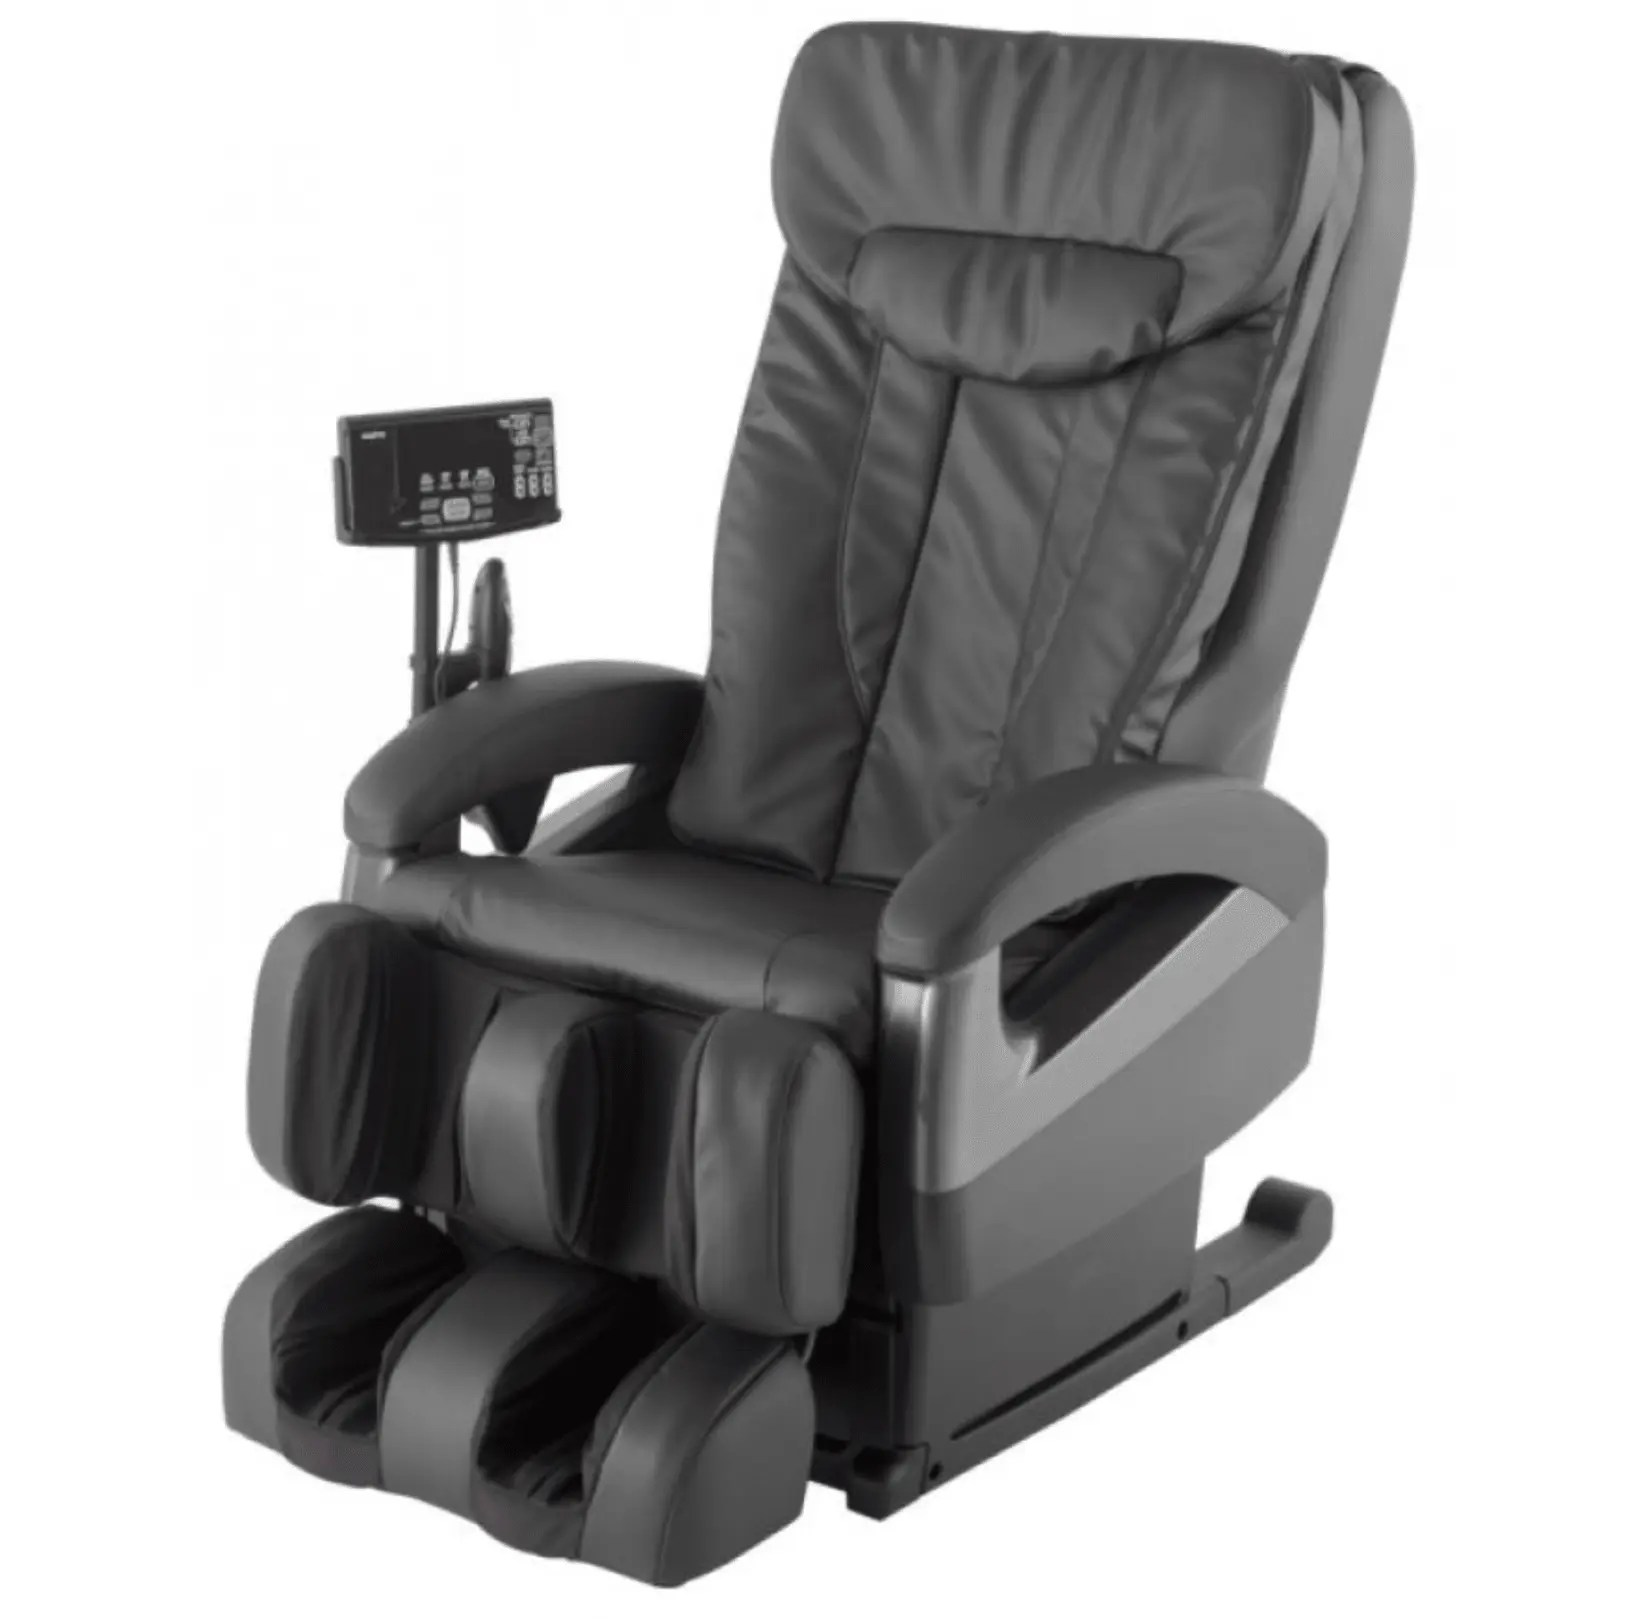 Message Chairs Sanyo Dr5700 Massage Chair Body Massage Shop